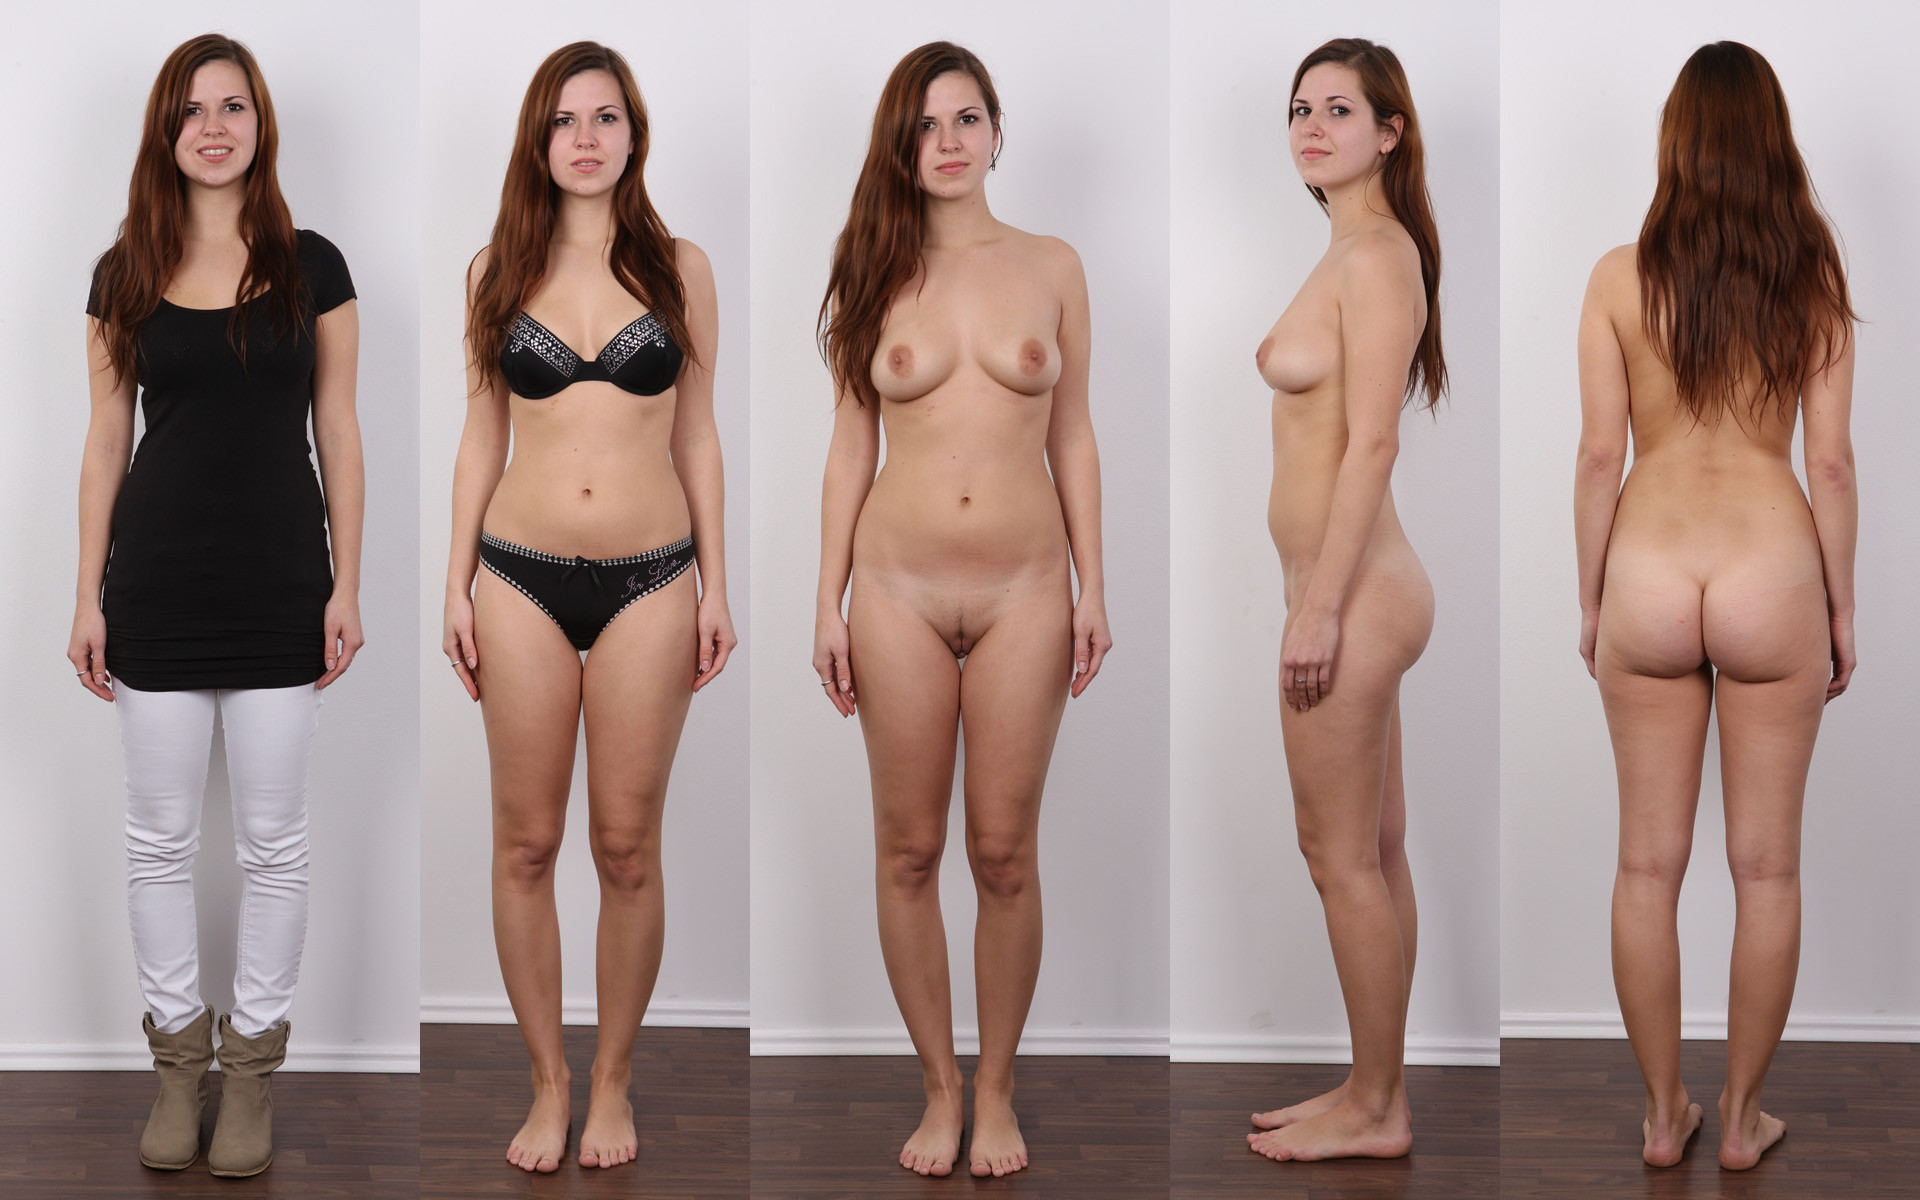 young-girl-beautiful-women-without-clothes-on-happened-black